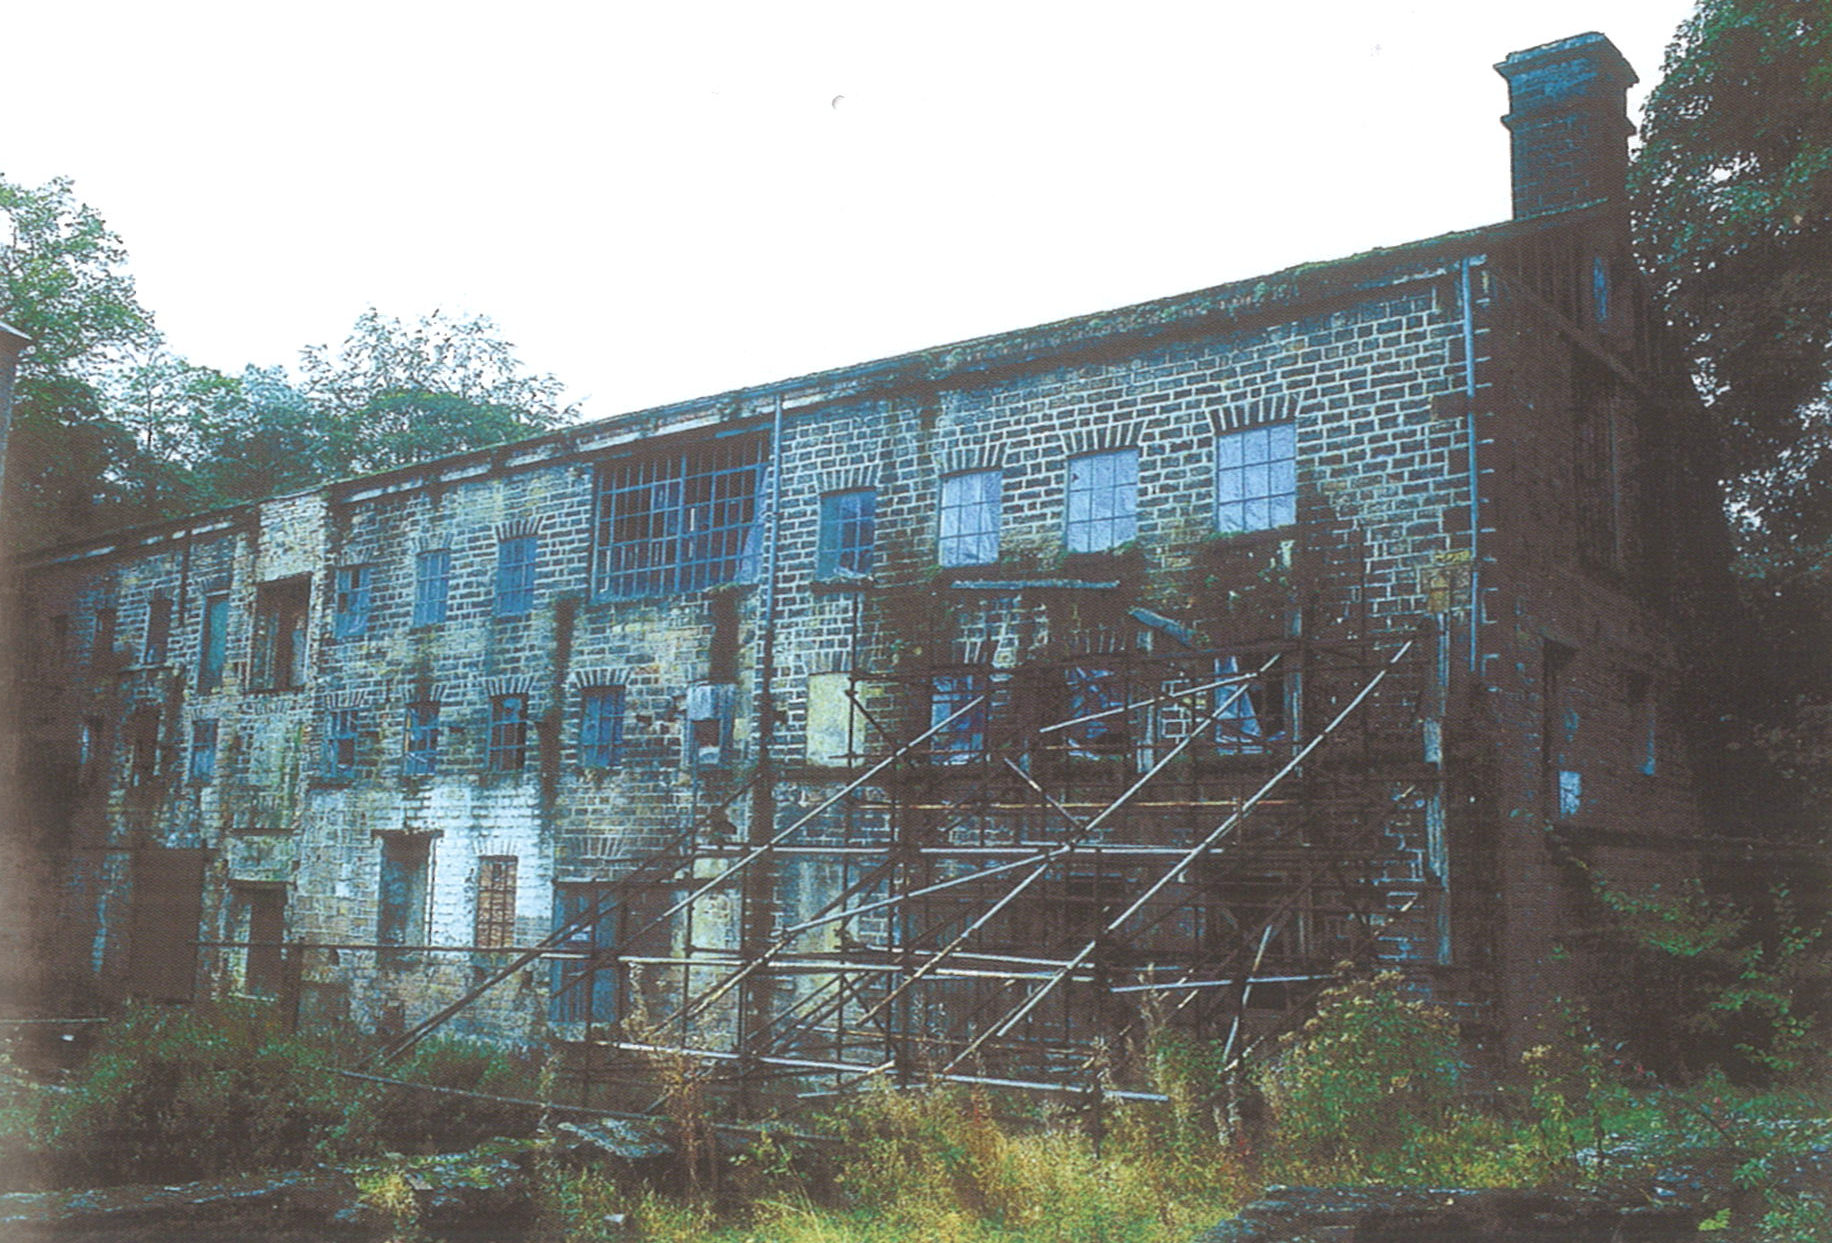 A photograph of a three story brick mill building. Scaffolding is supporting the right-hand front of the building, and overgrown foliage surrounds the base.